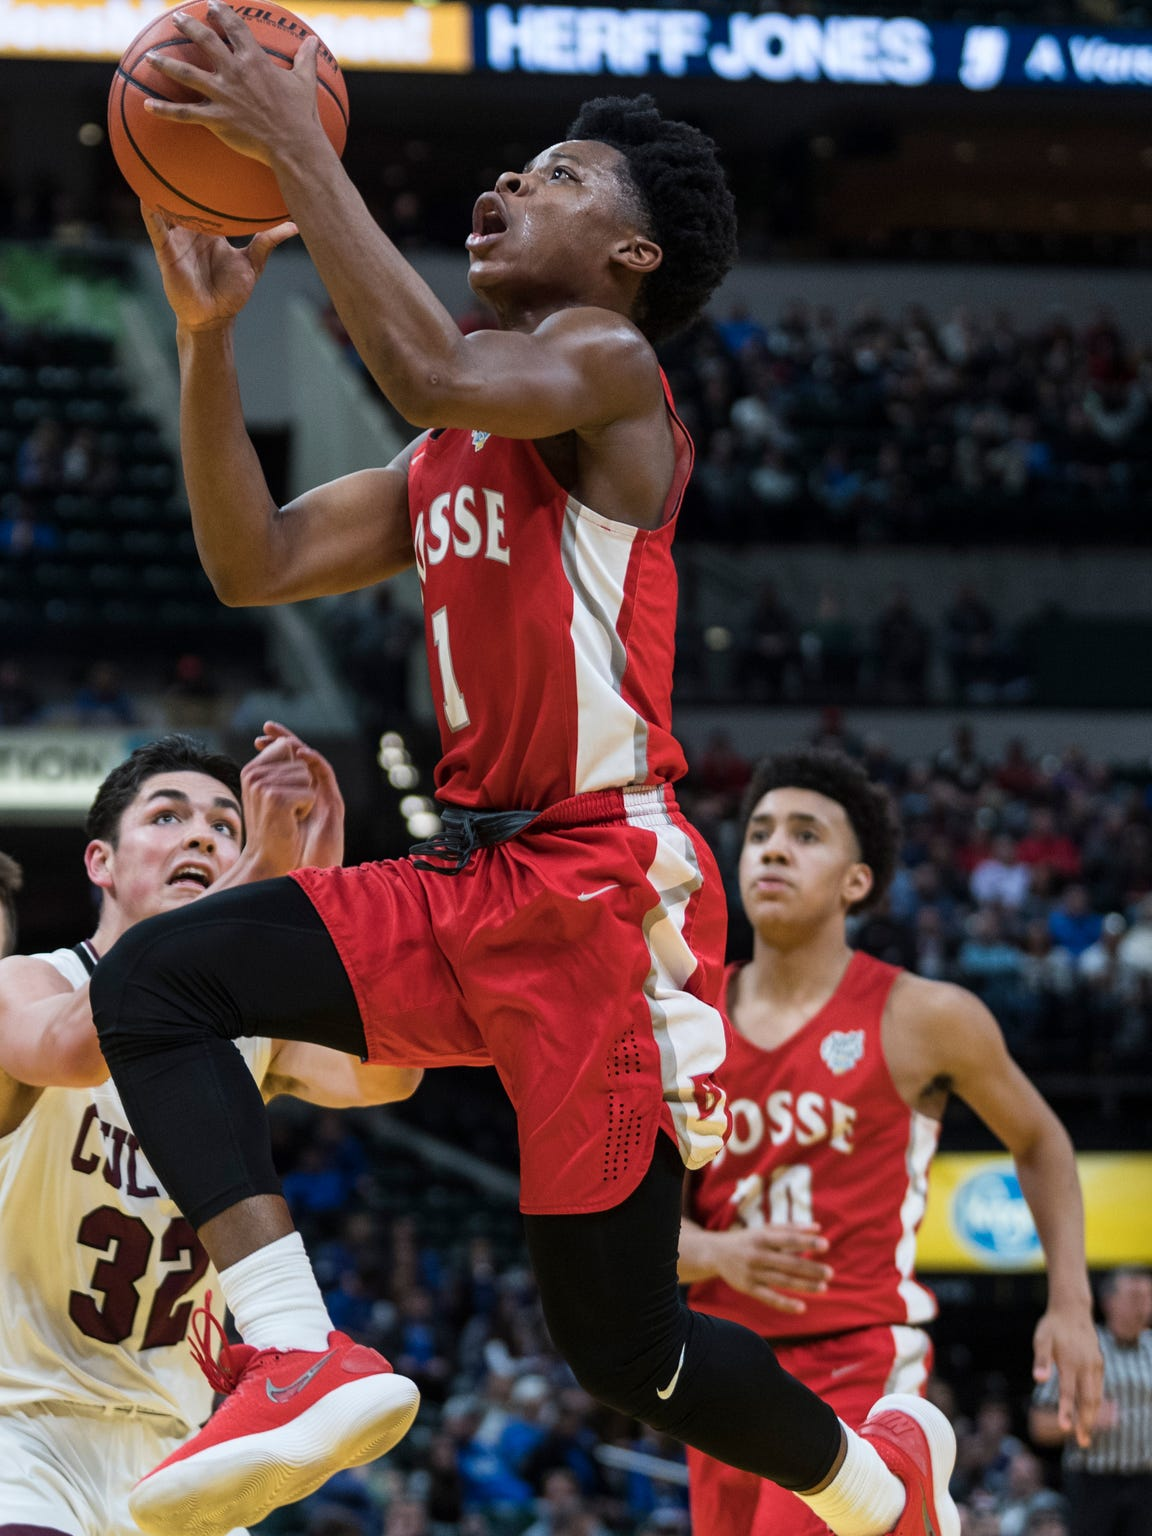 Bosse's Jaylin Chinn (1) goes for a lay up during the IHSAA Class 3A State Championship at Bankers Life Fieldhouse in Indianapolis, Saturday, March 24. The Bulldogs were defeated by the Culver Academies Eagles, 64-49.